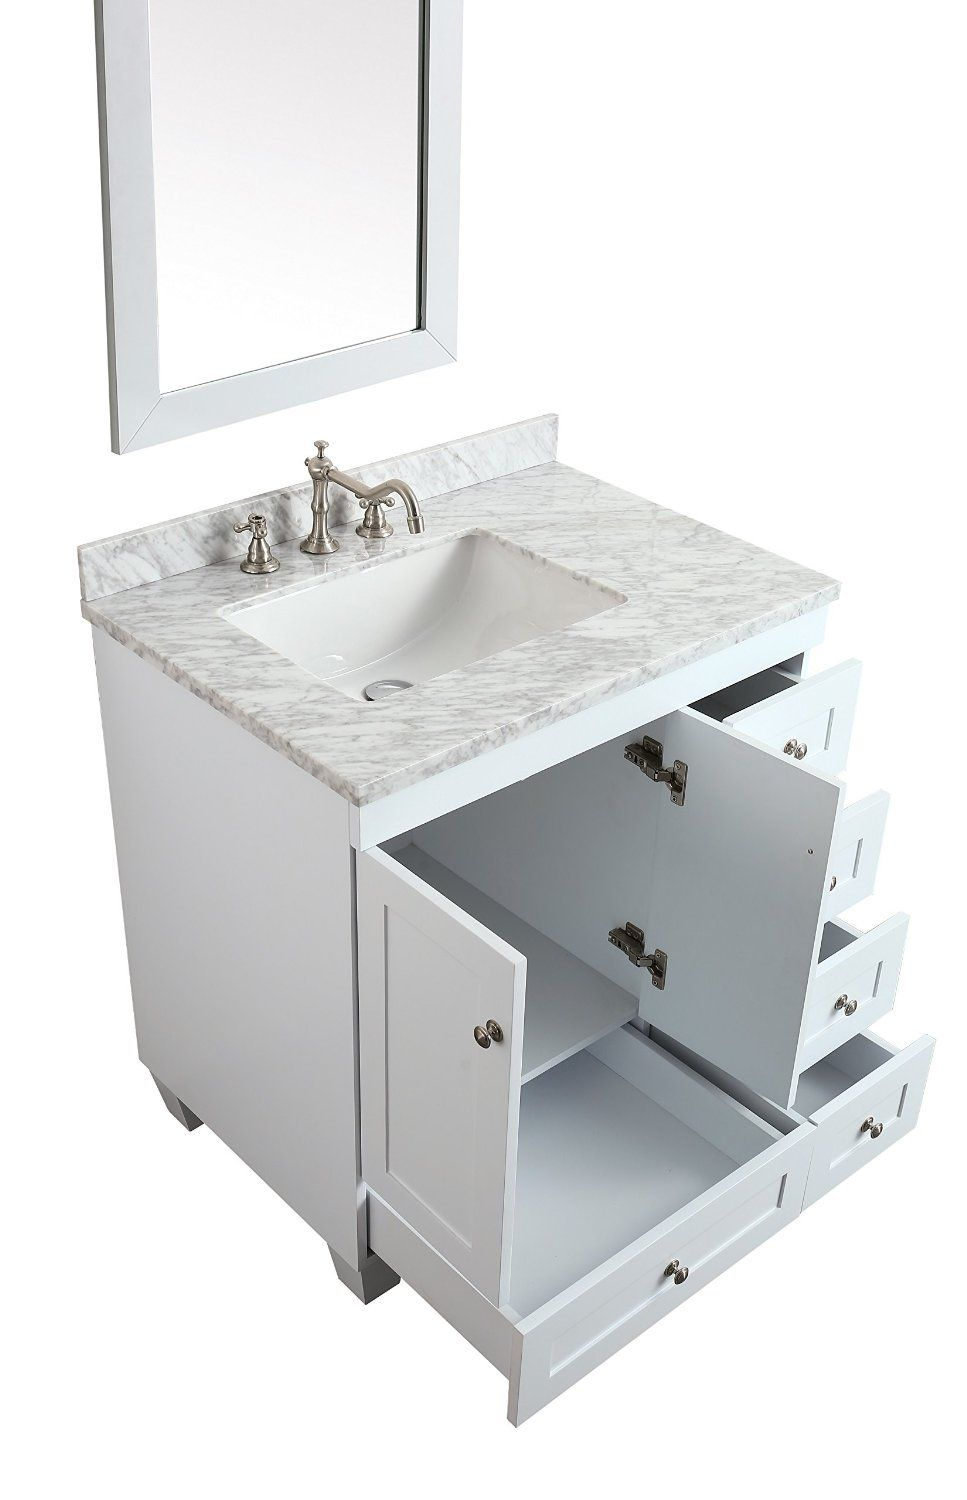 Eviva Evvn69 30wh Acclaim C 30 Inch Transitional White Bathroom Vanity Countrtop Material Carrera Marble Sink Installation Type Undermount